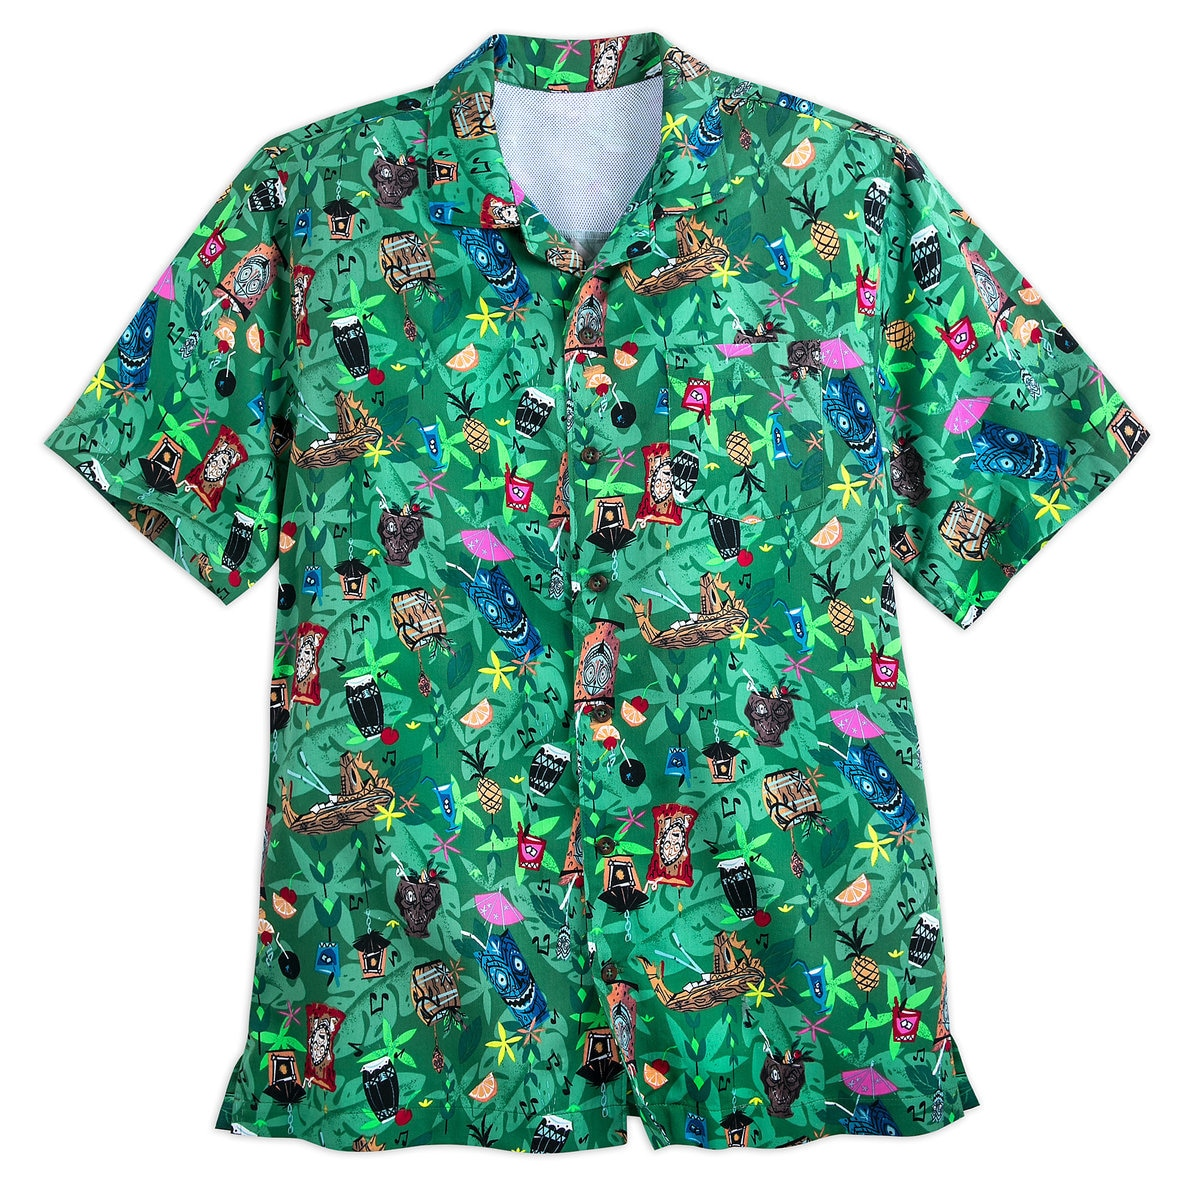 a0d41f57d Product Image of Disney's Polynesian Resort Aloha Shirt for Men # 1